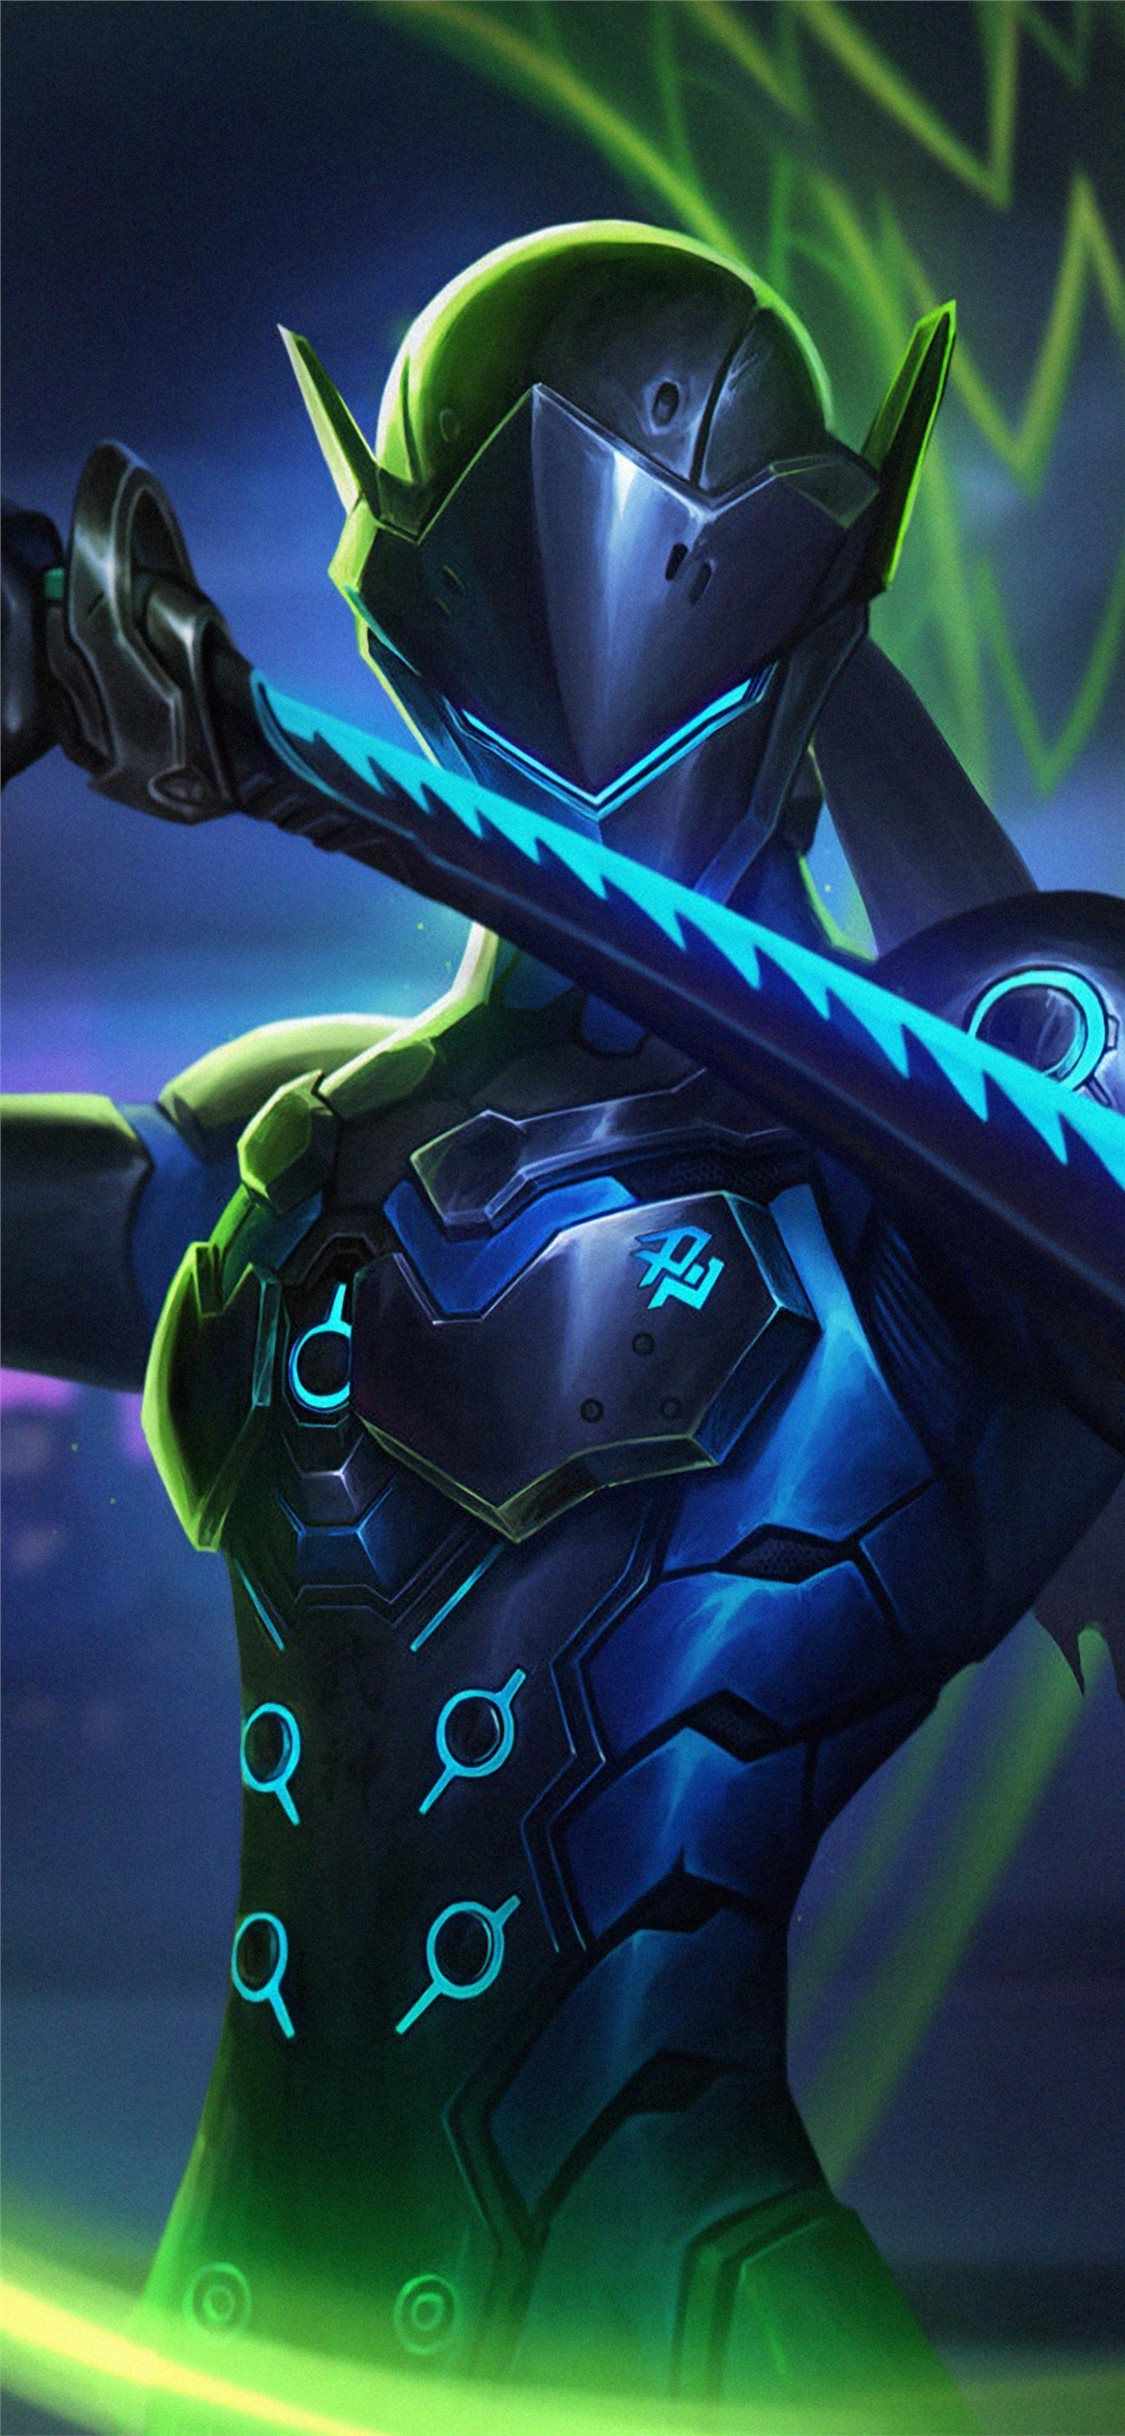 download the genji overwatch art 4k wallpaper beaty your 1125x2436